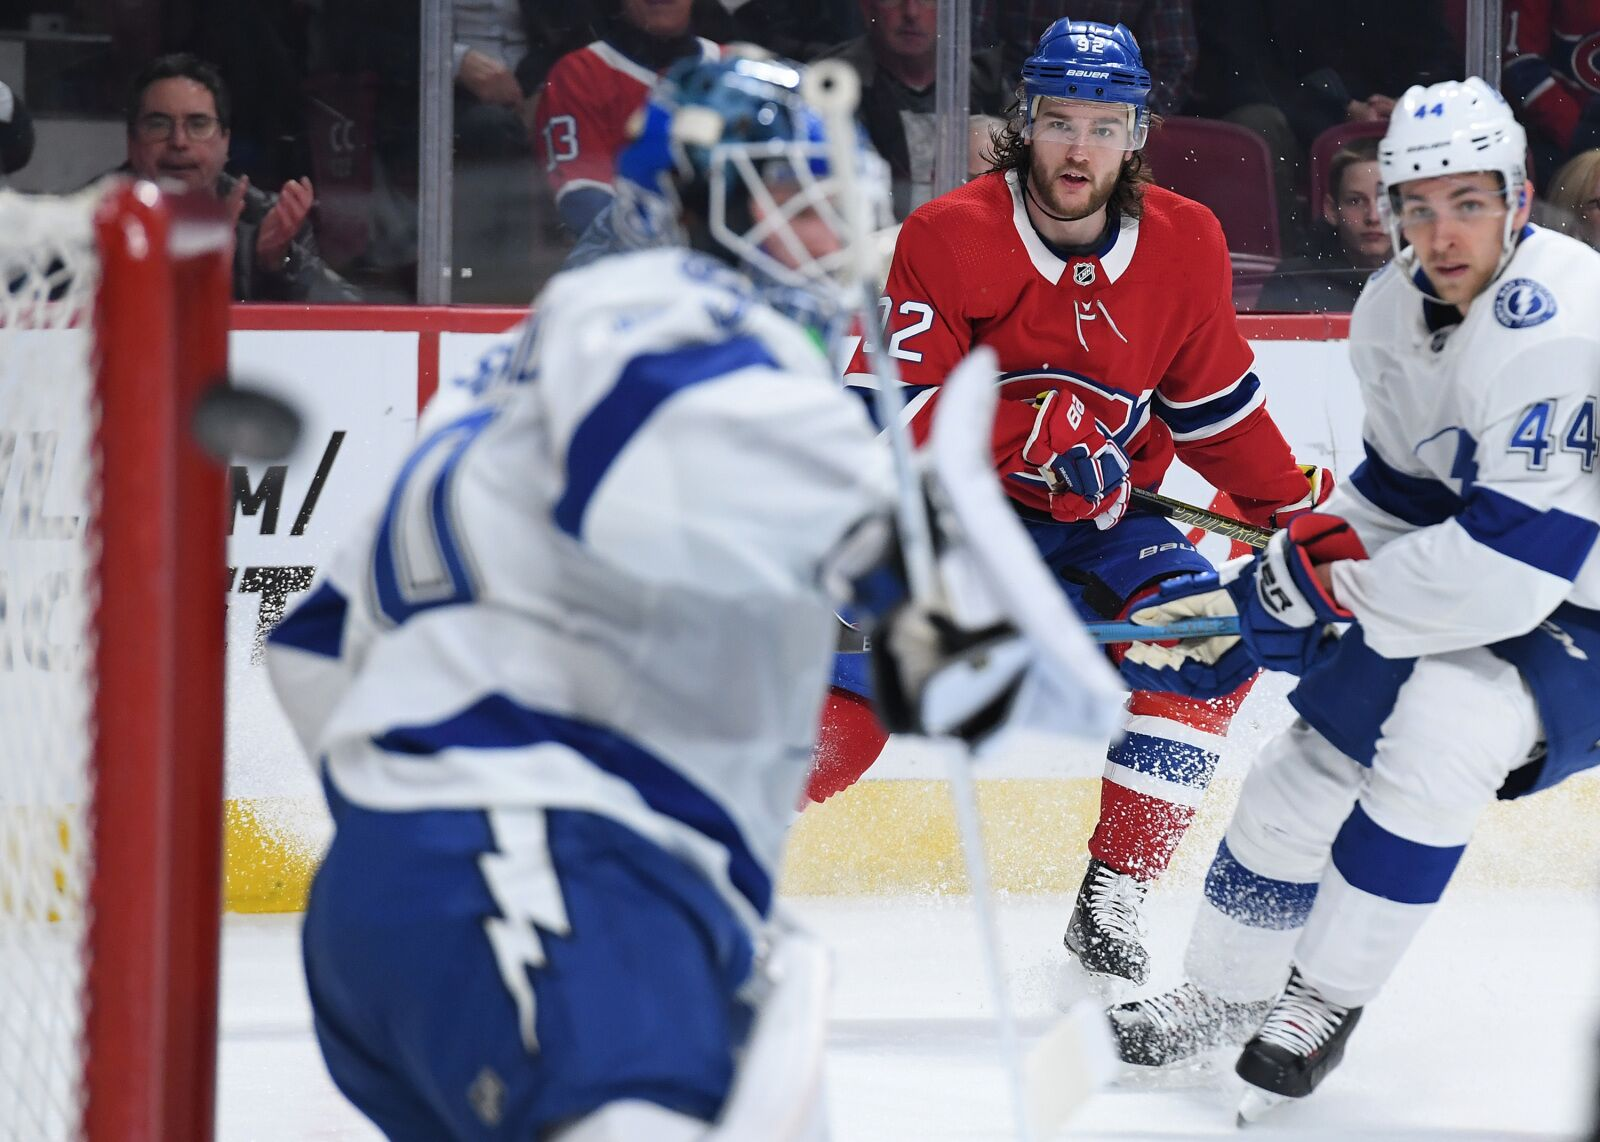 Montreal Canadiens: Four points to focus on ahead of the Lightning game